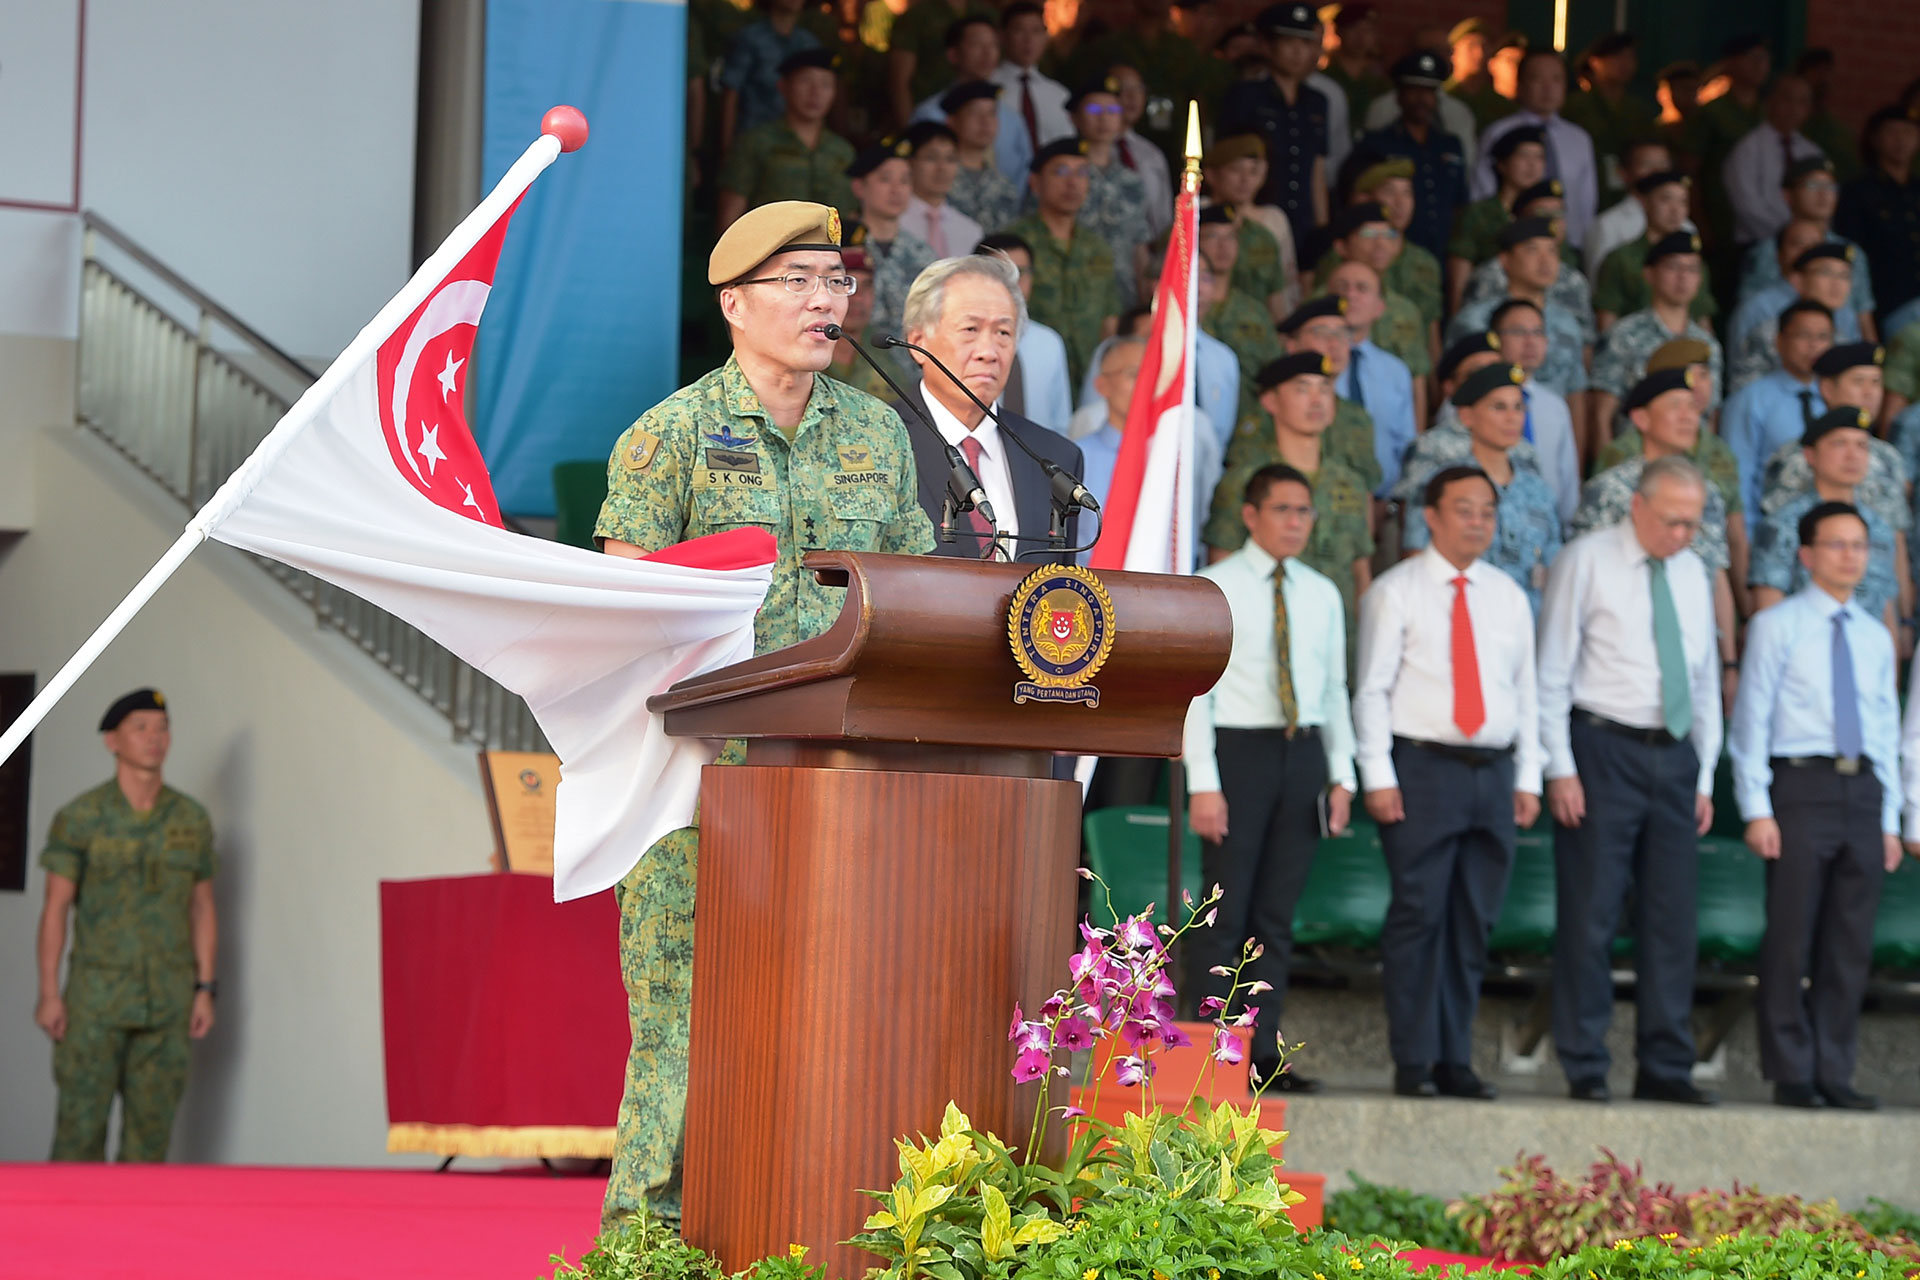 MG Ong taking oath as the new Chief of Defence Force at the Change of Command Parade this evening.